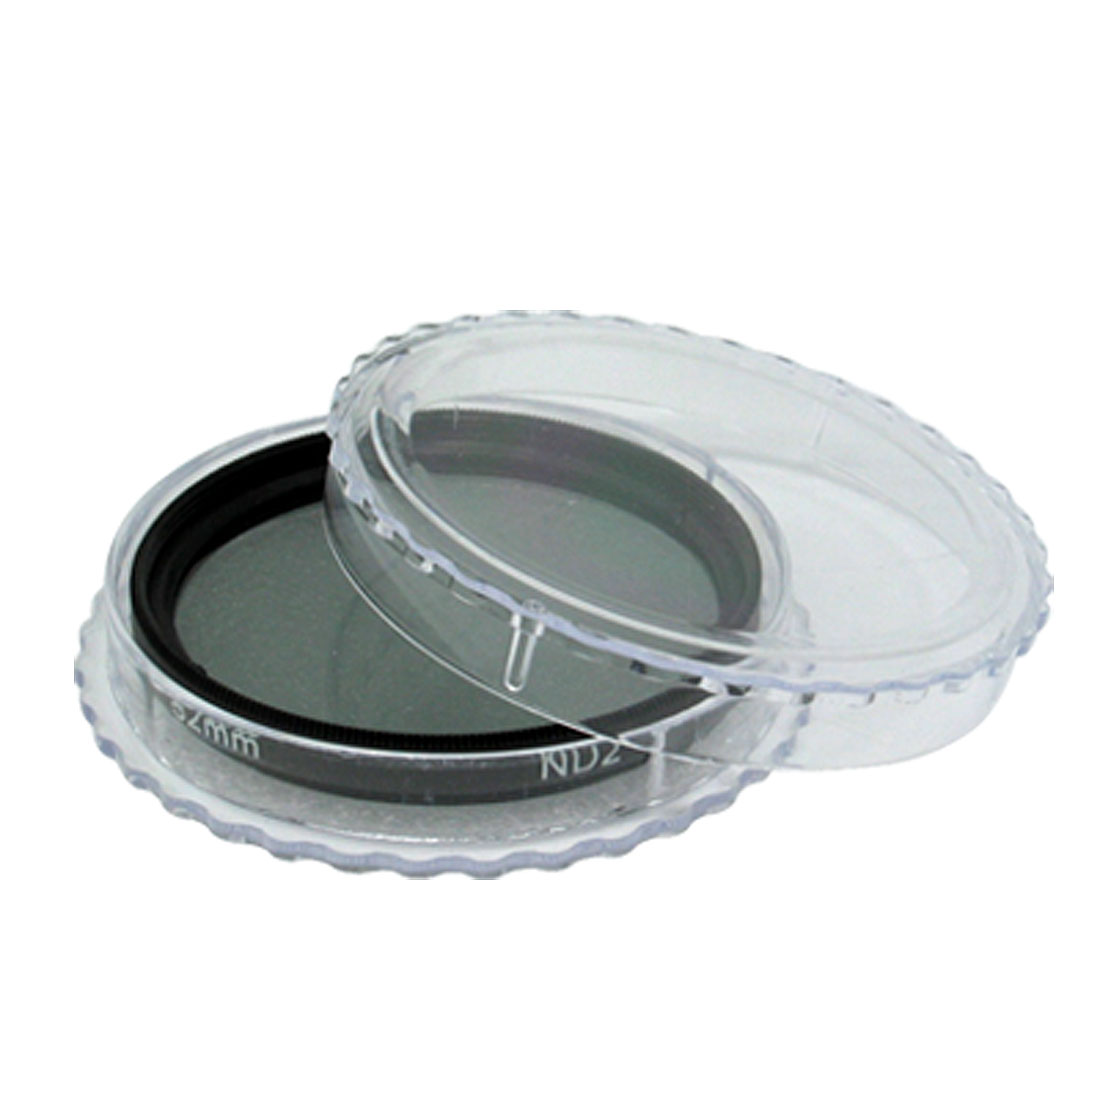 52mm Neutral Density ND2 Lens Filter for Camera